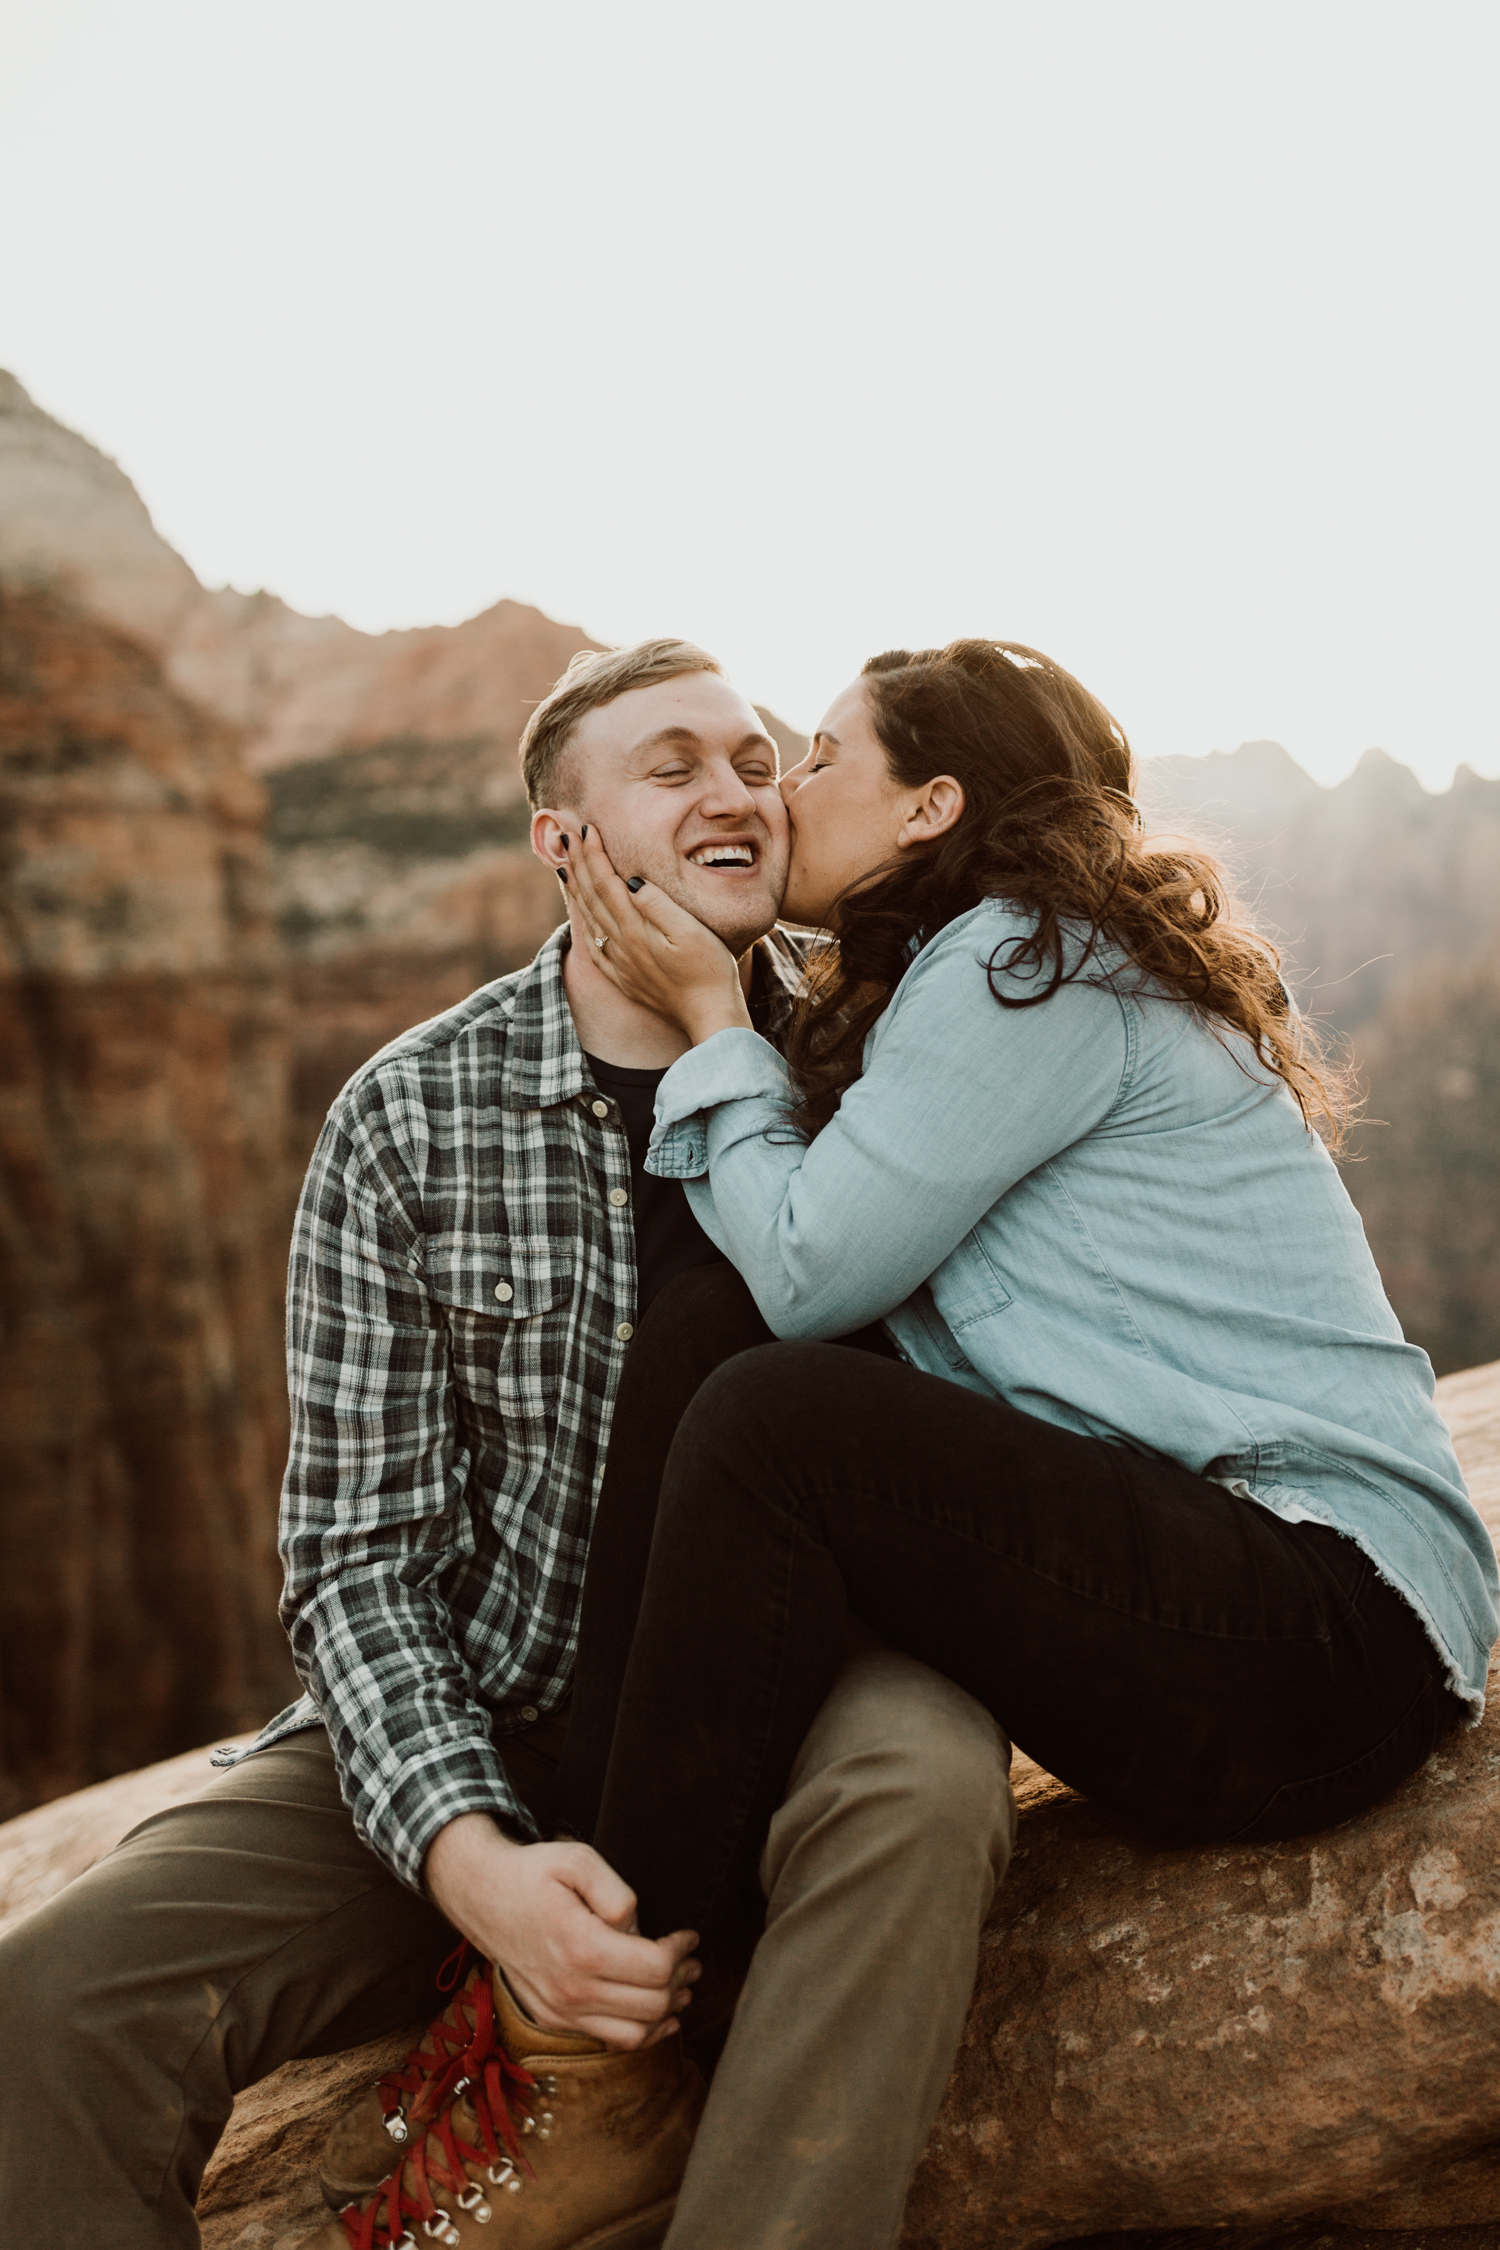 zion-national-park-engagements-44.jpg